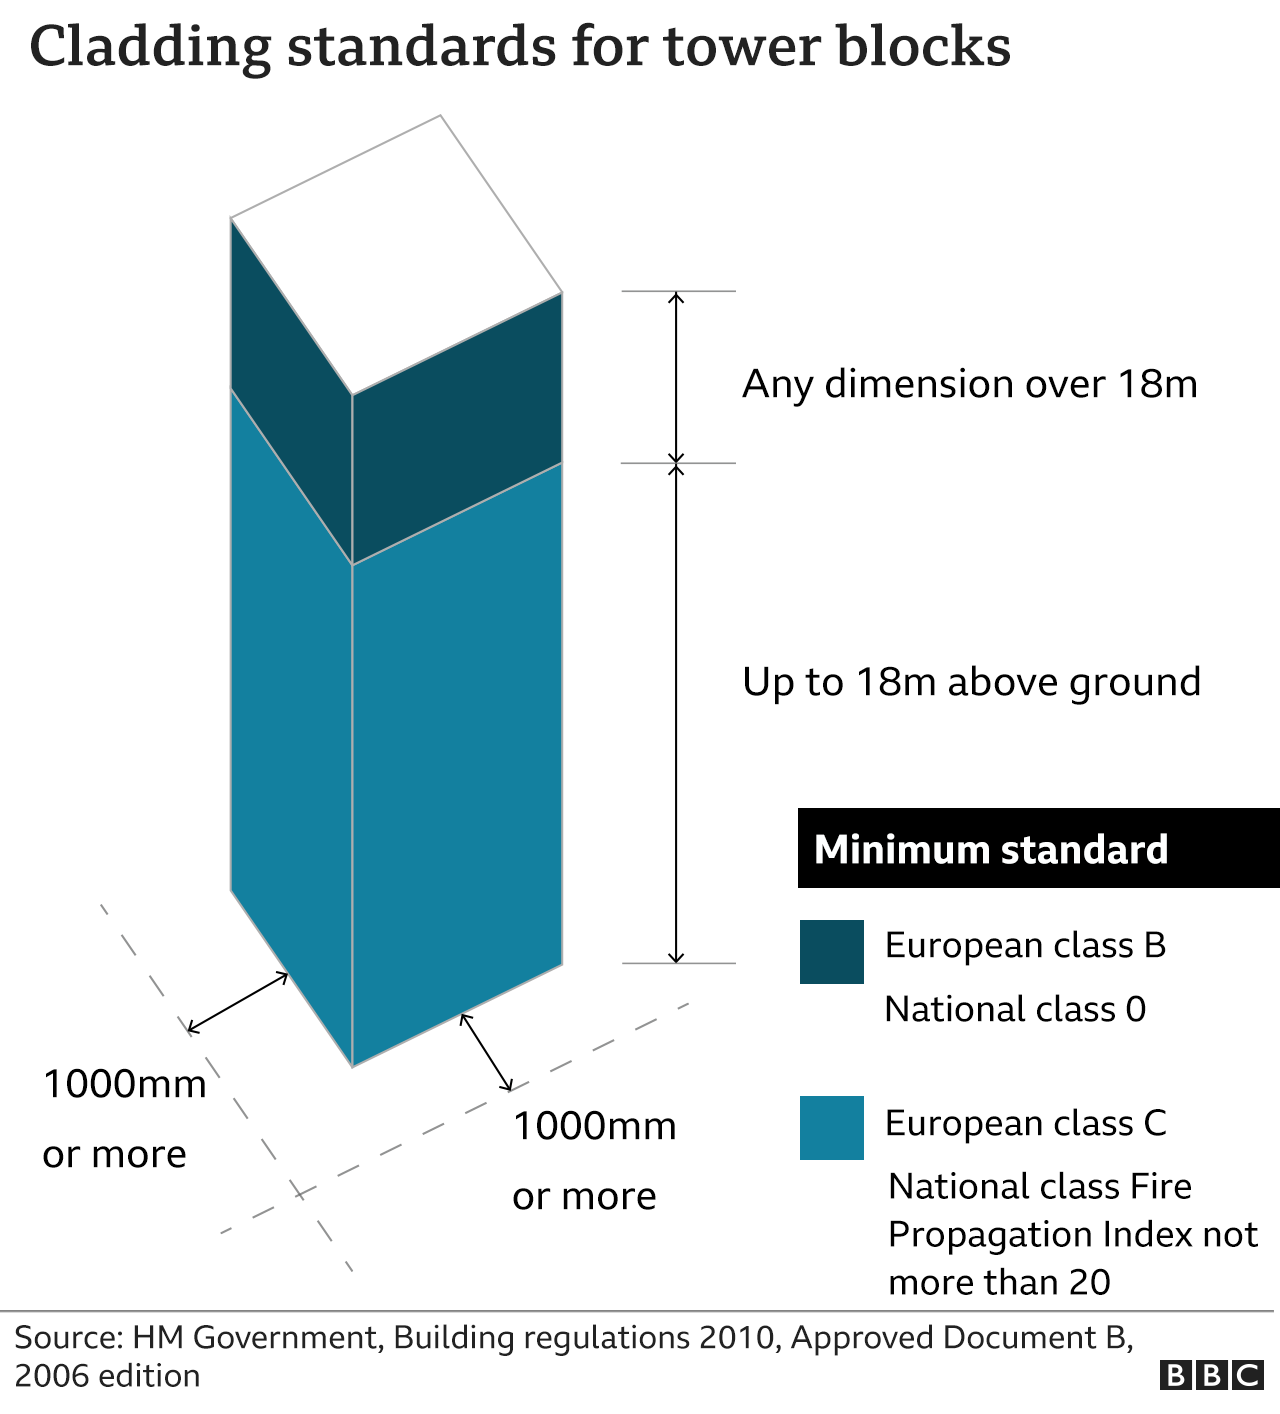 Graphic showing cladding standards for tower blocks